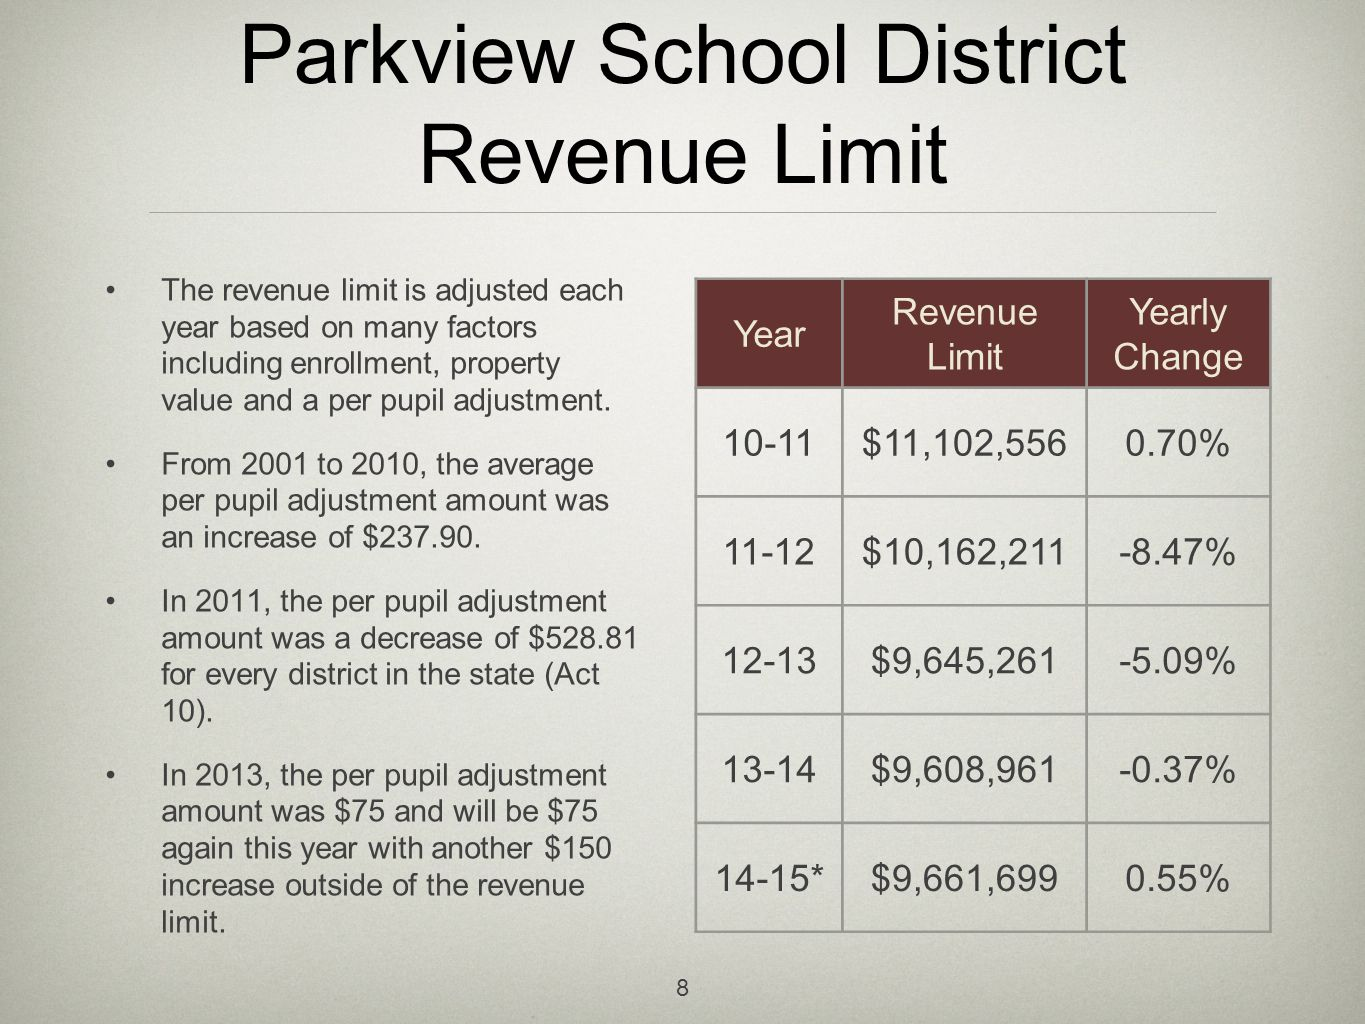 Parkview School District Revenue Limit The revenue limit is adjusted each year based on many factors including enrollment, property value and a per pupil adjustment.